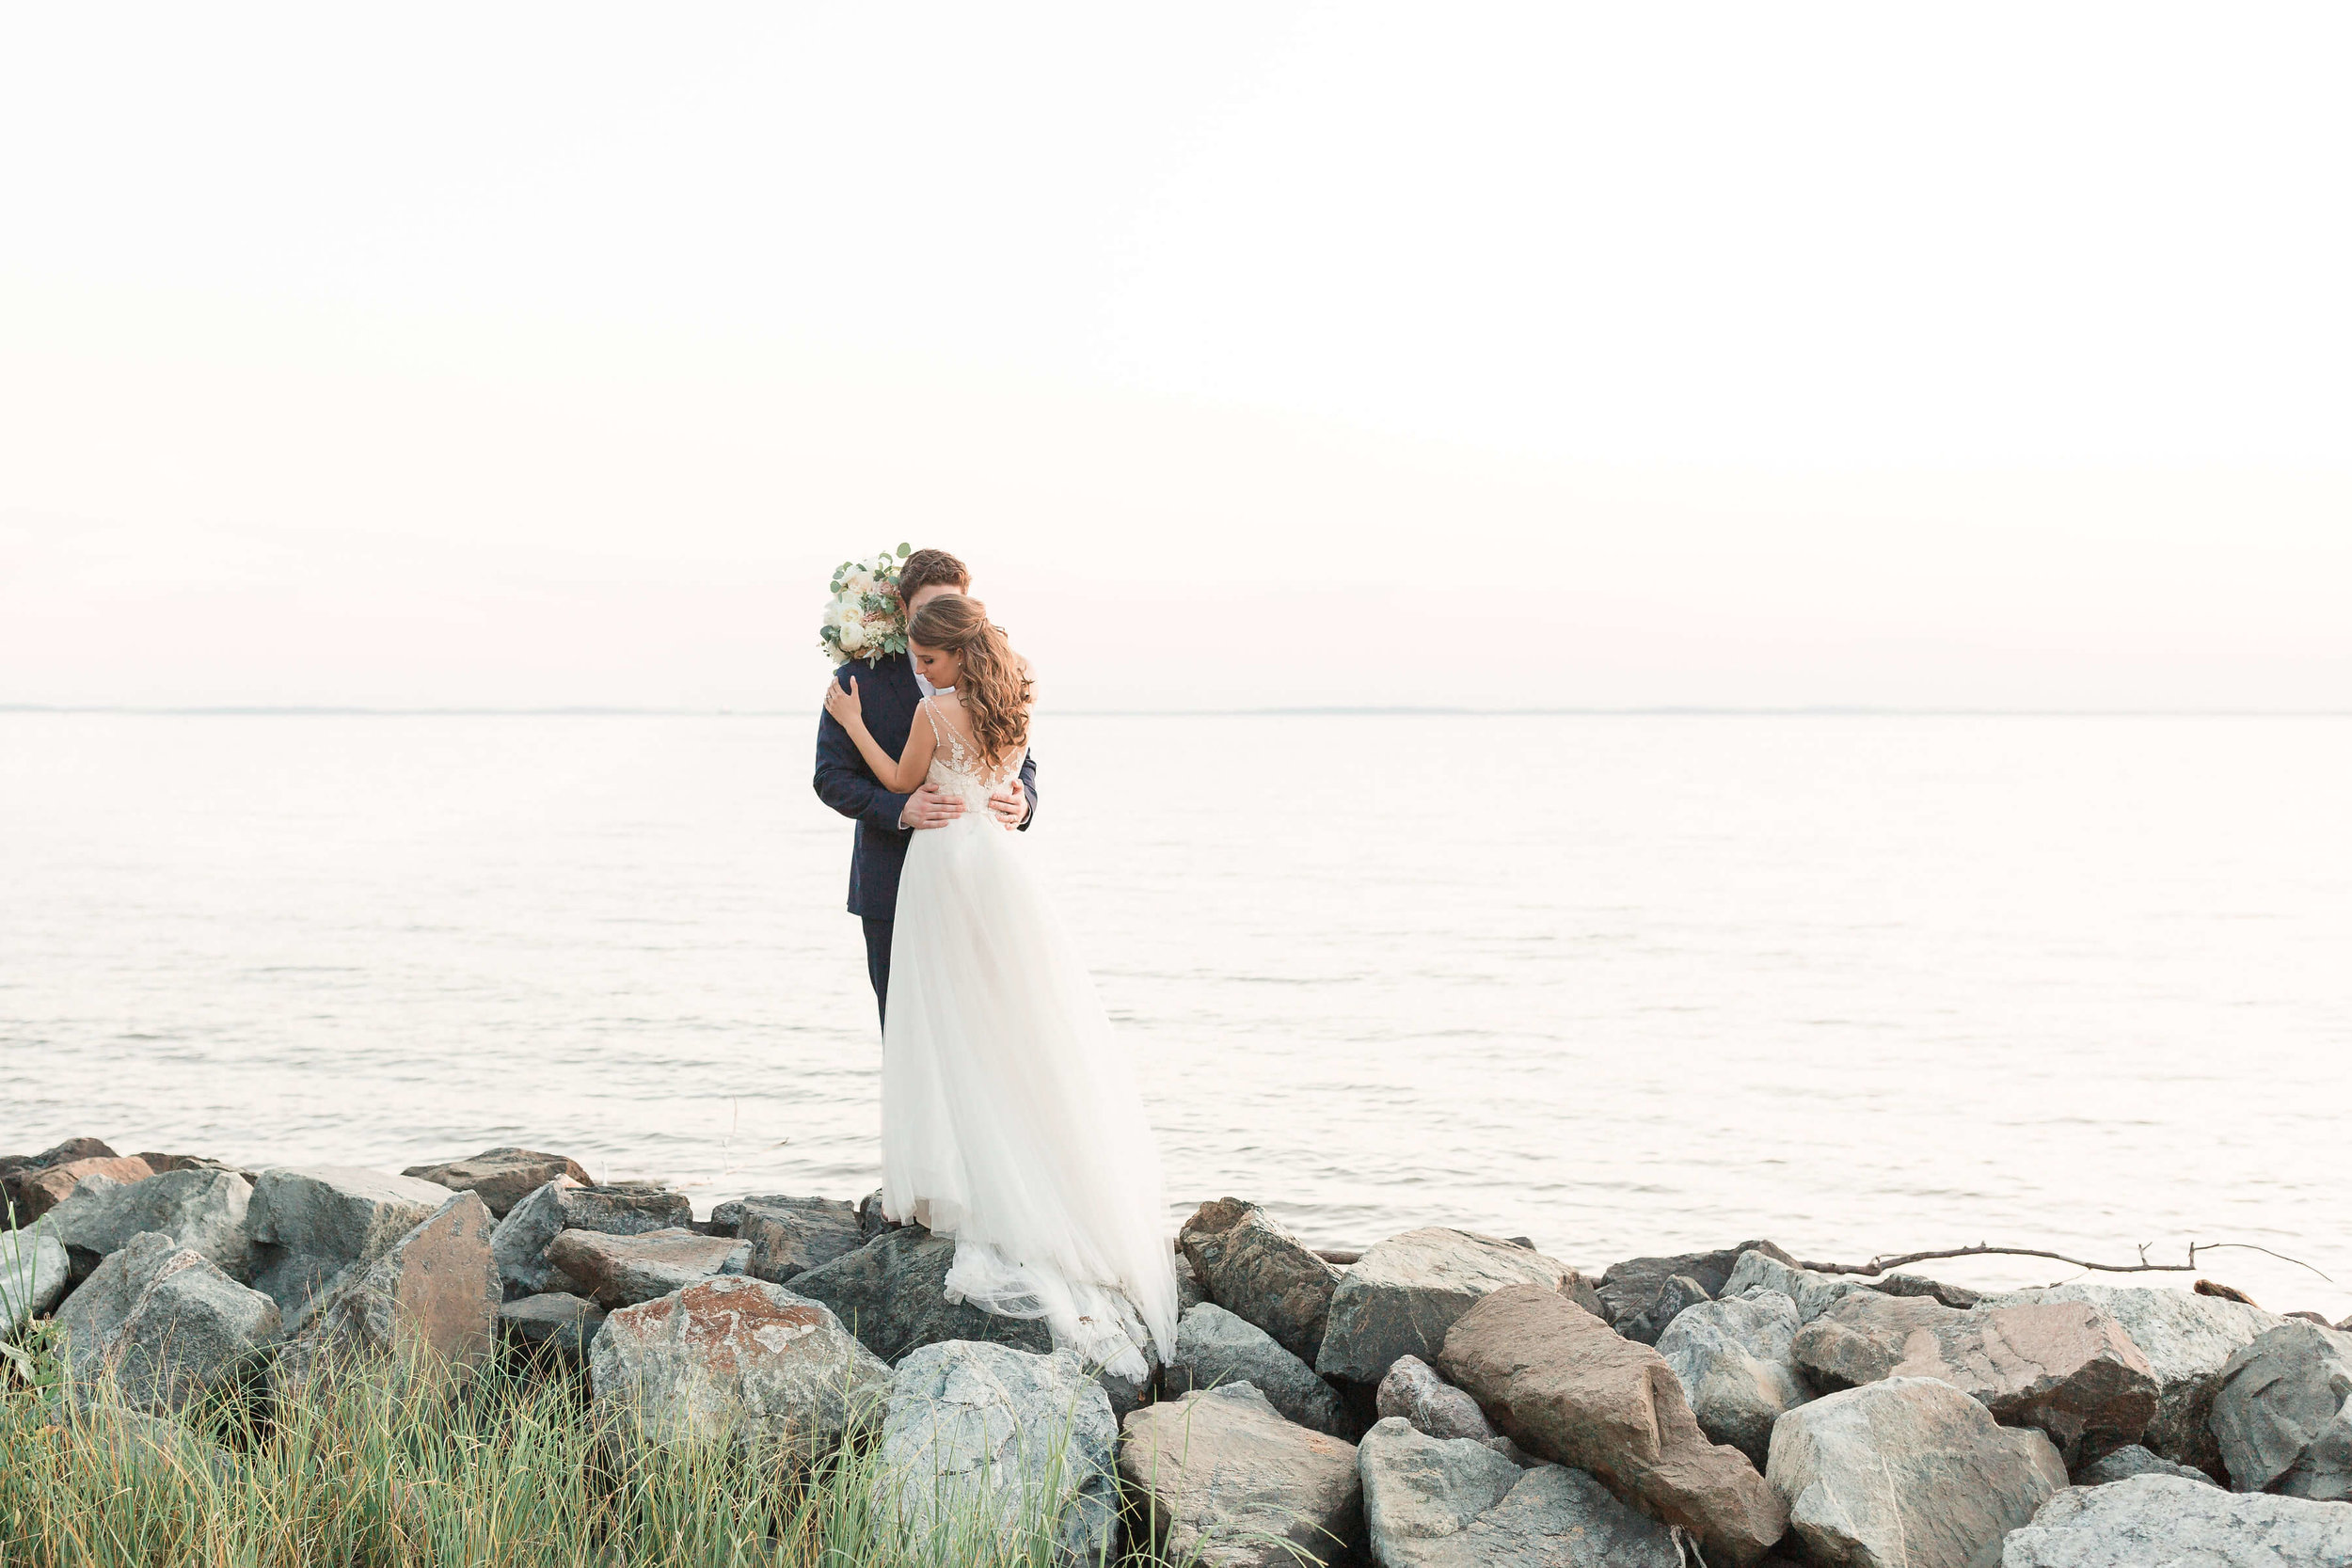 ChesapeakeBayBeachClubWedding_E&B-422.jpg